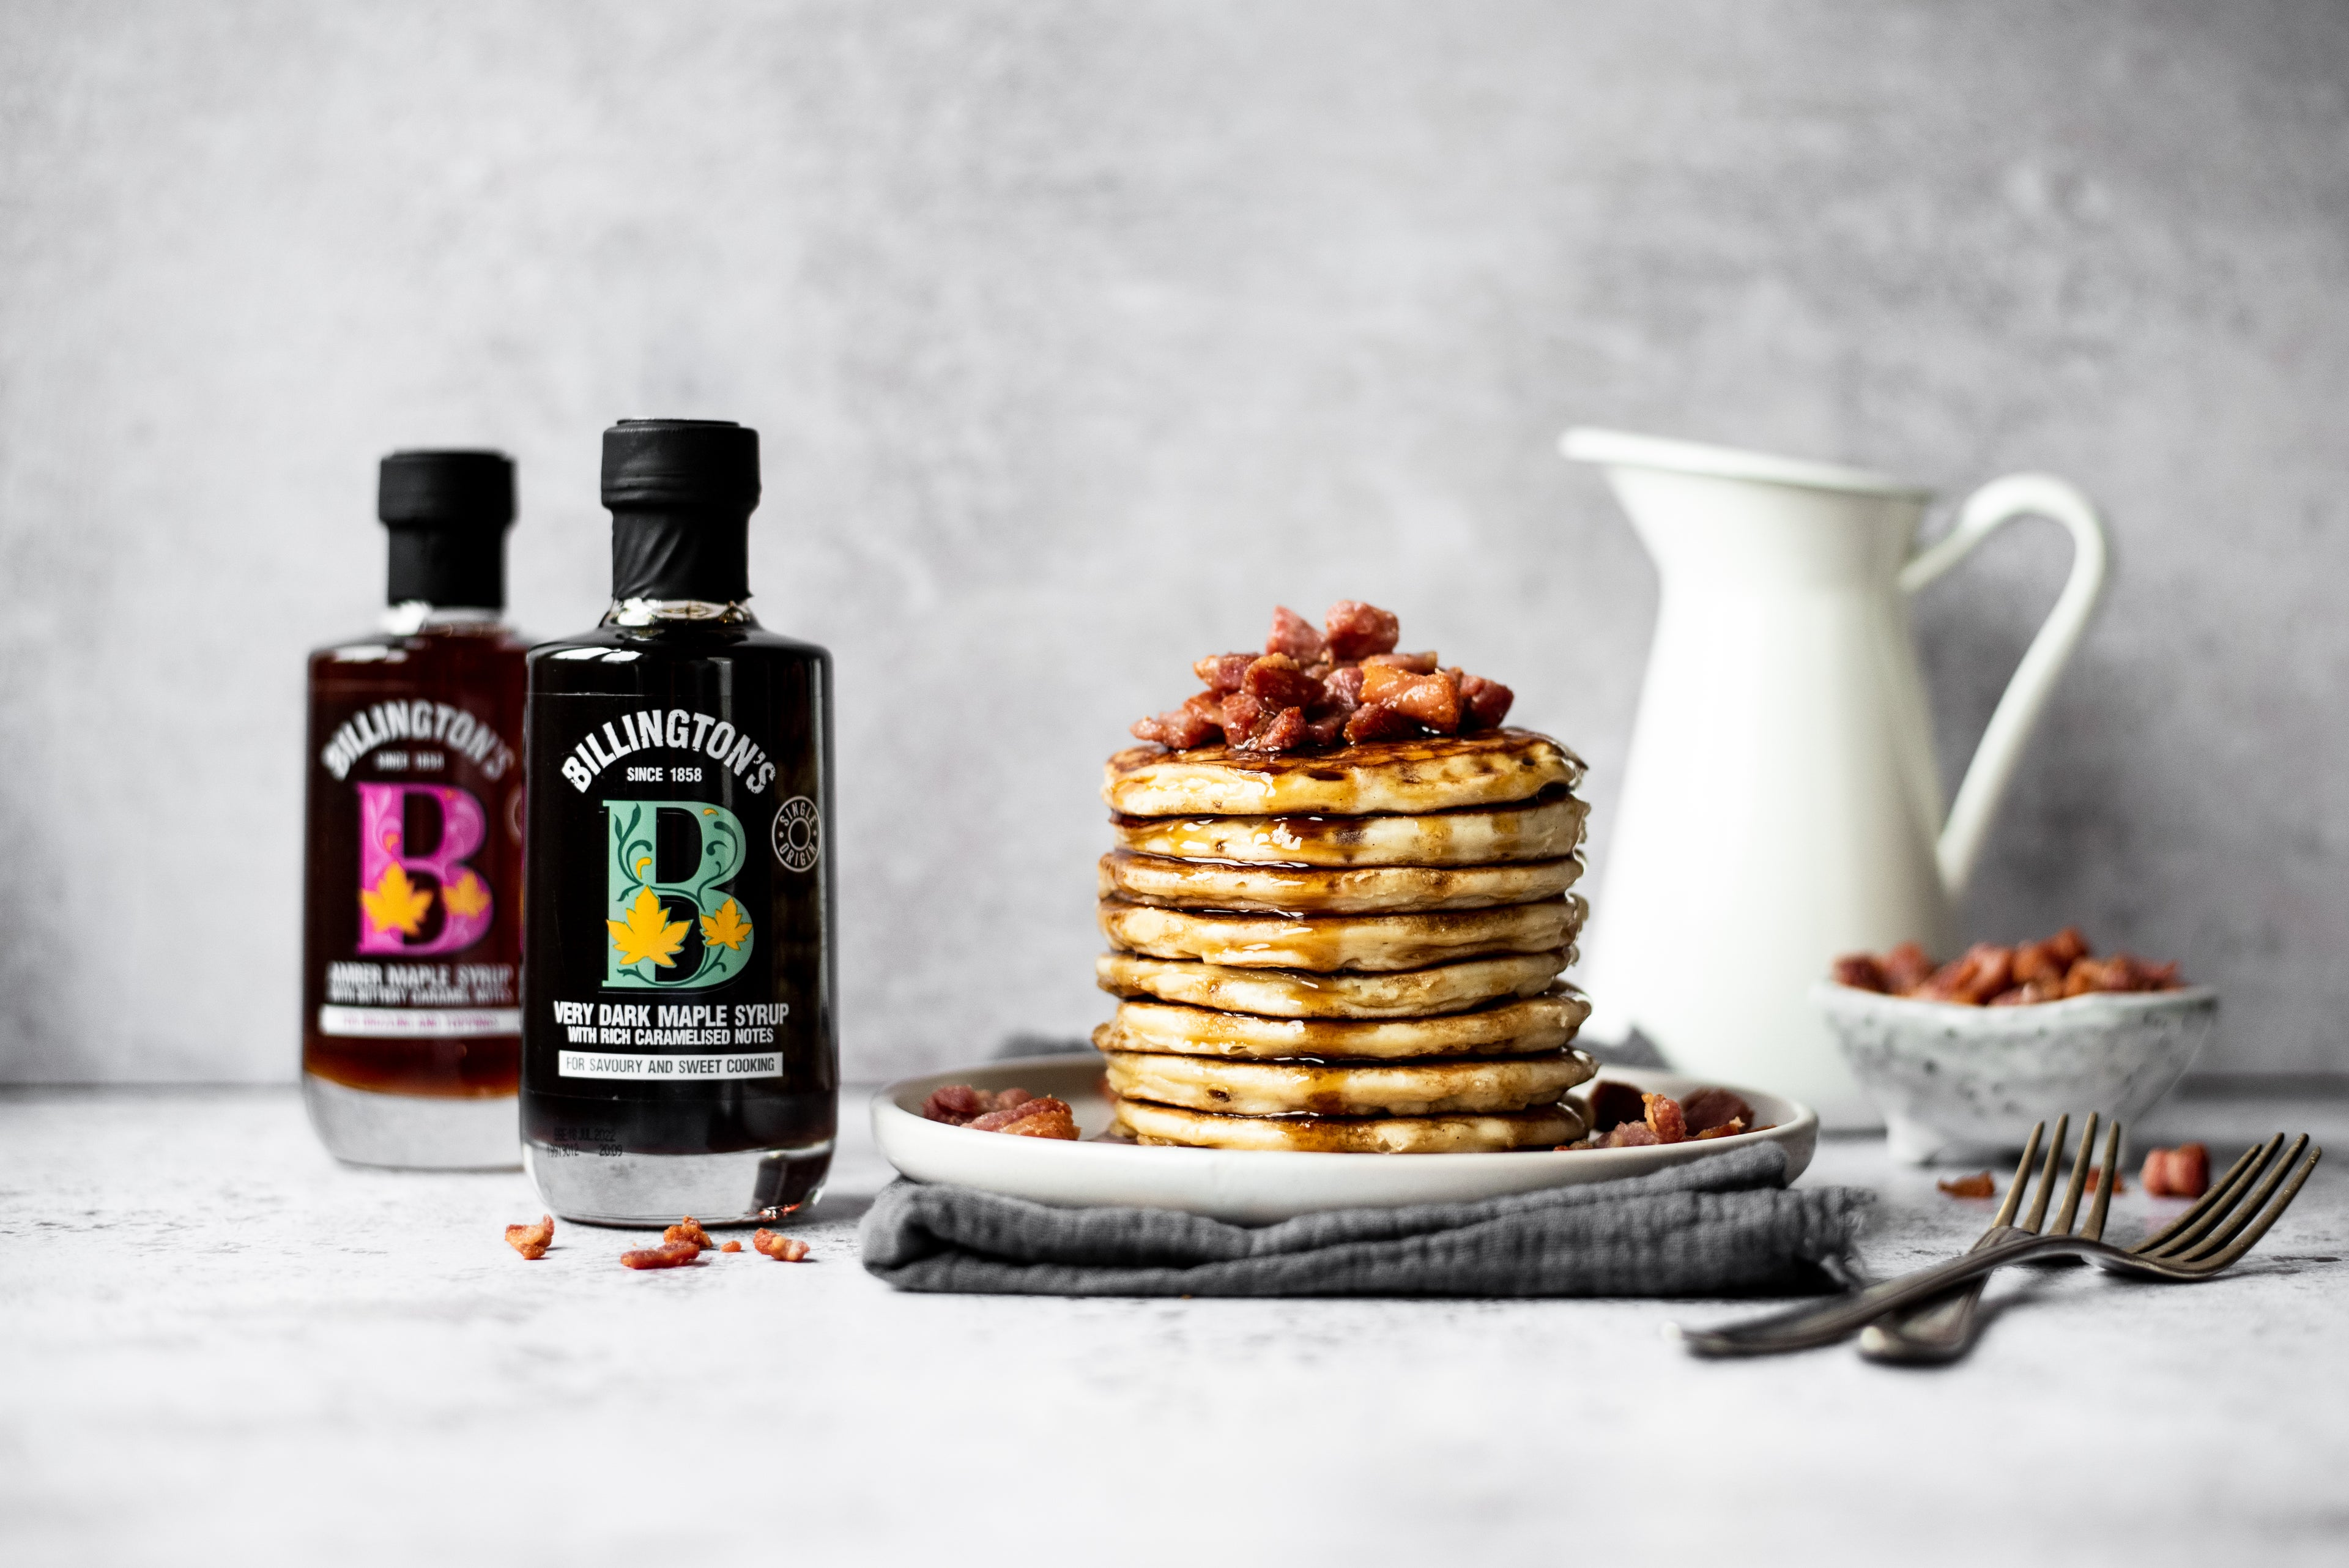 Pancake stack with bacon/ Maple syrup bottles and jug in background